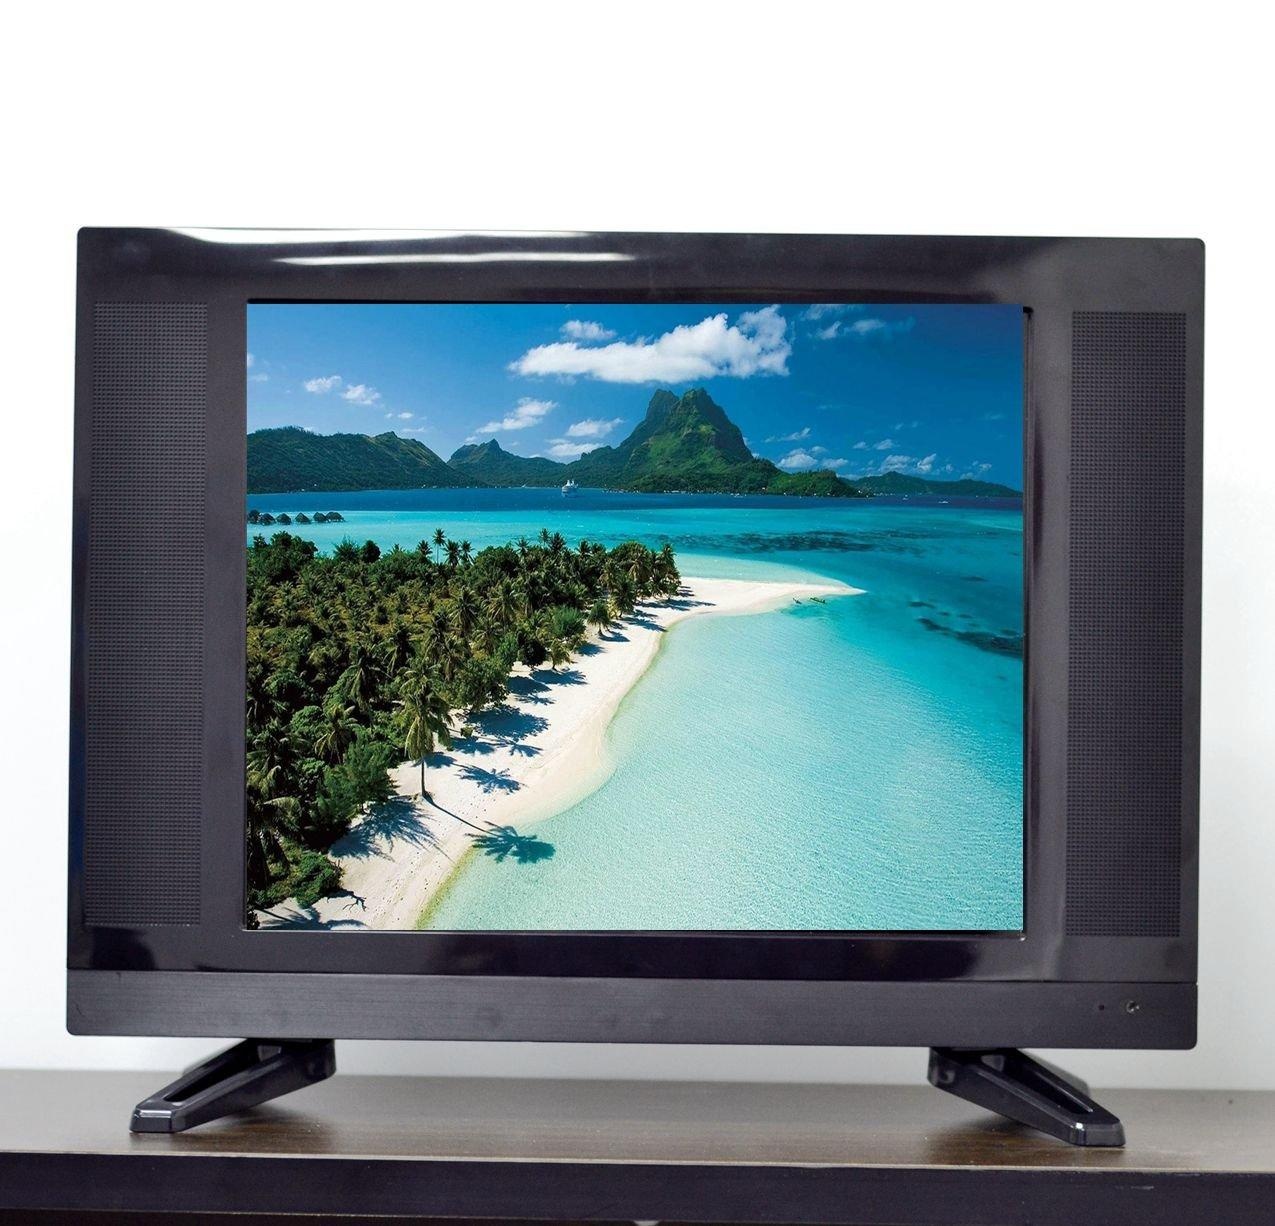 Xinyao LCD fashion lcd tv 15 inch price popular for lcd screen-1